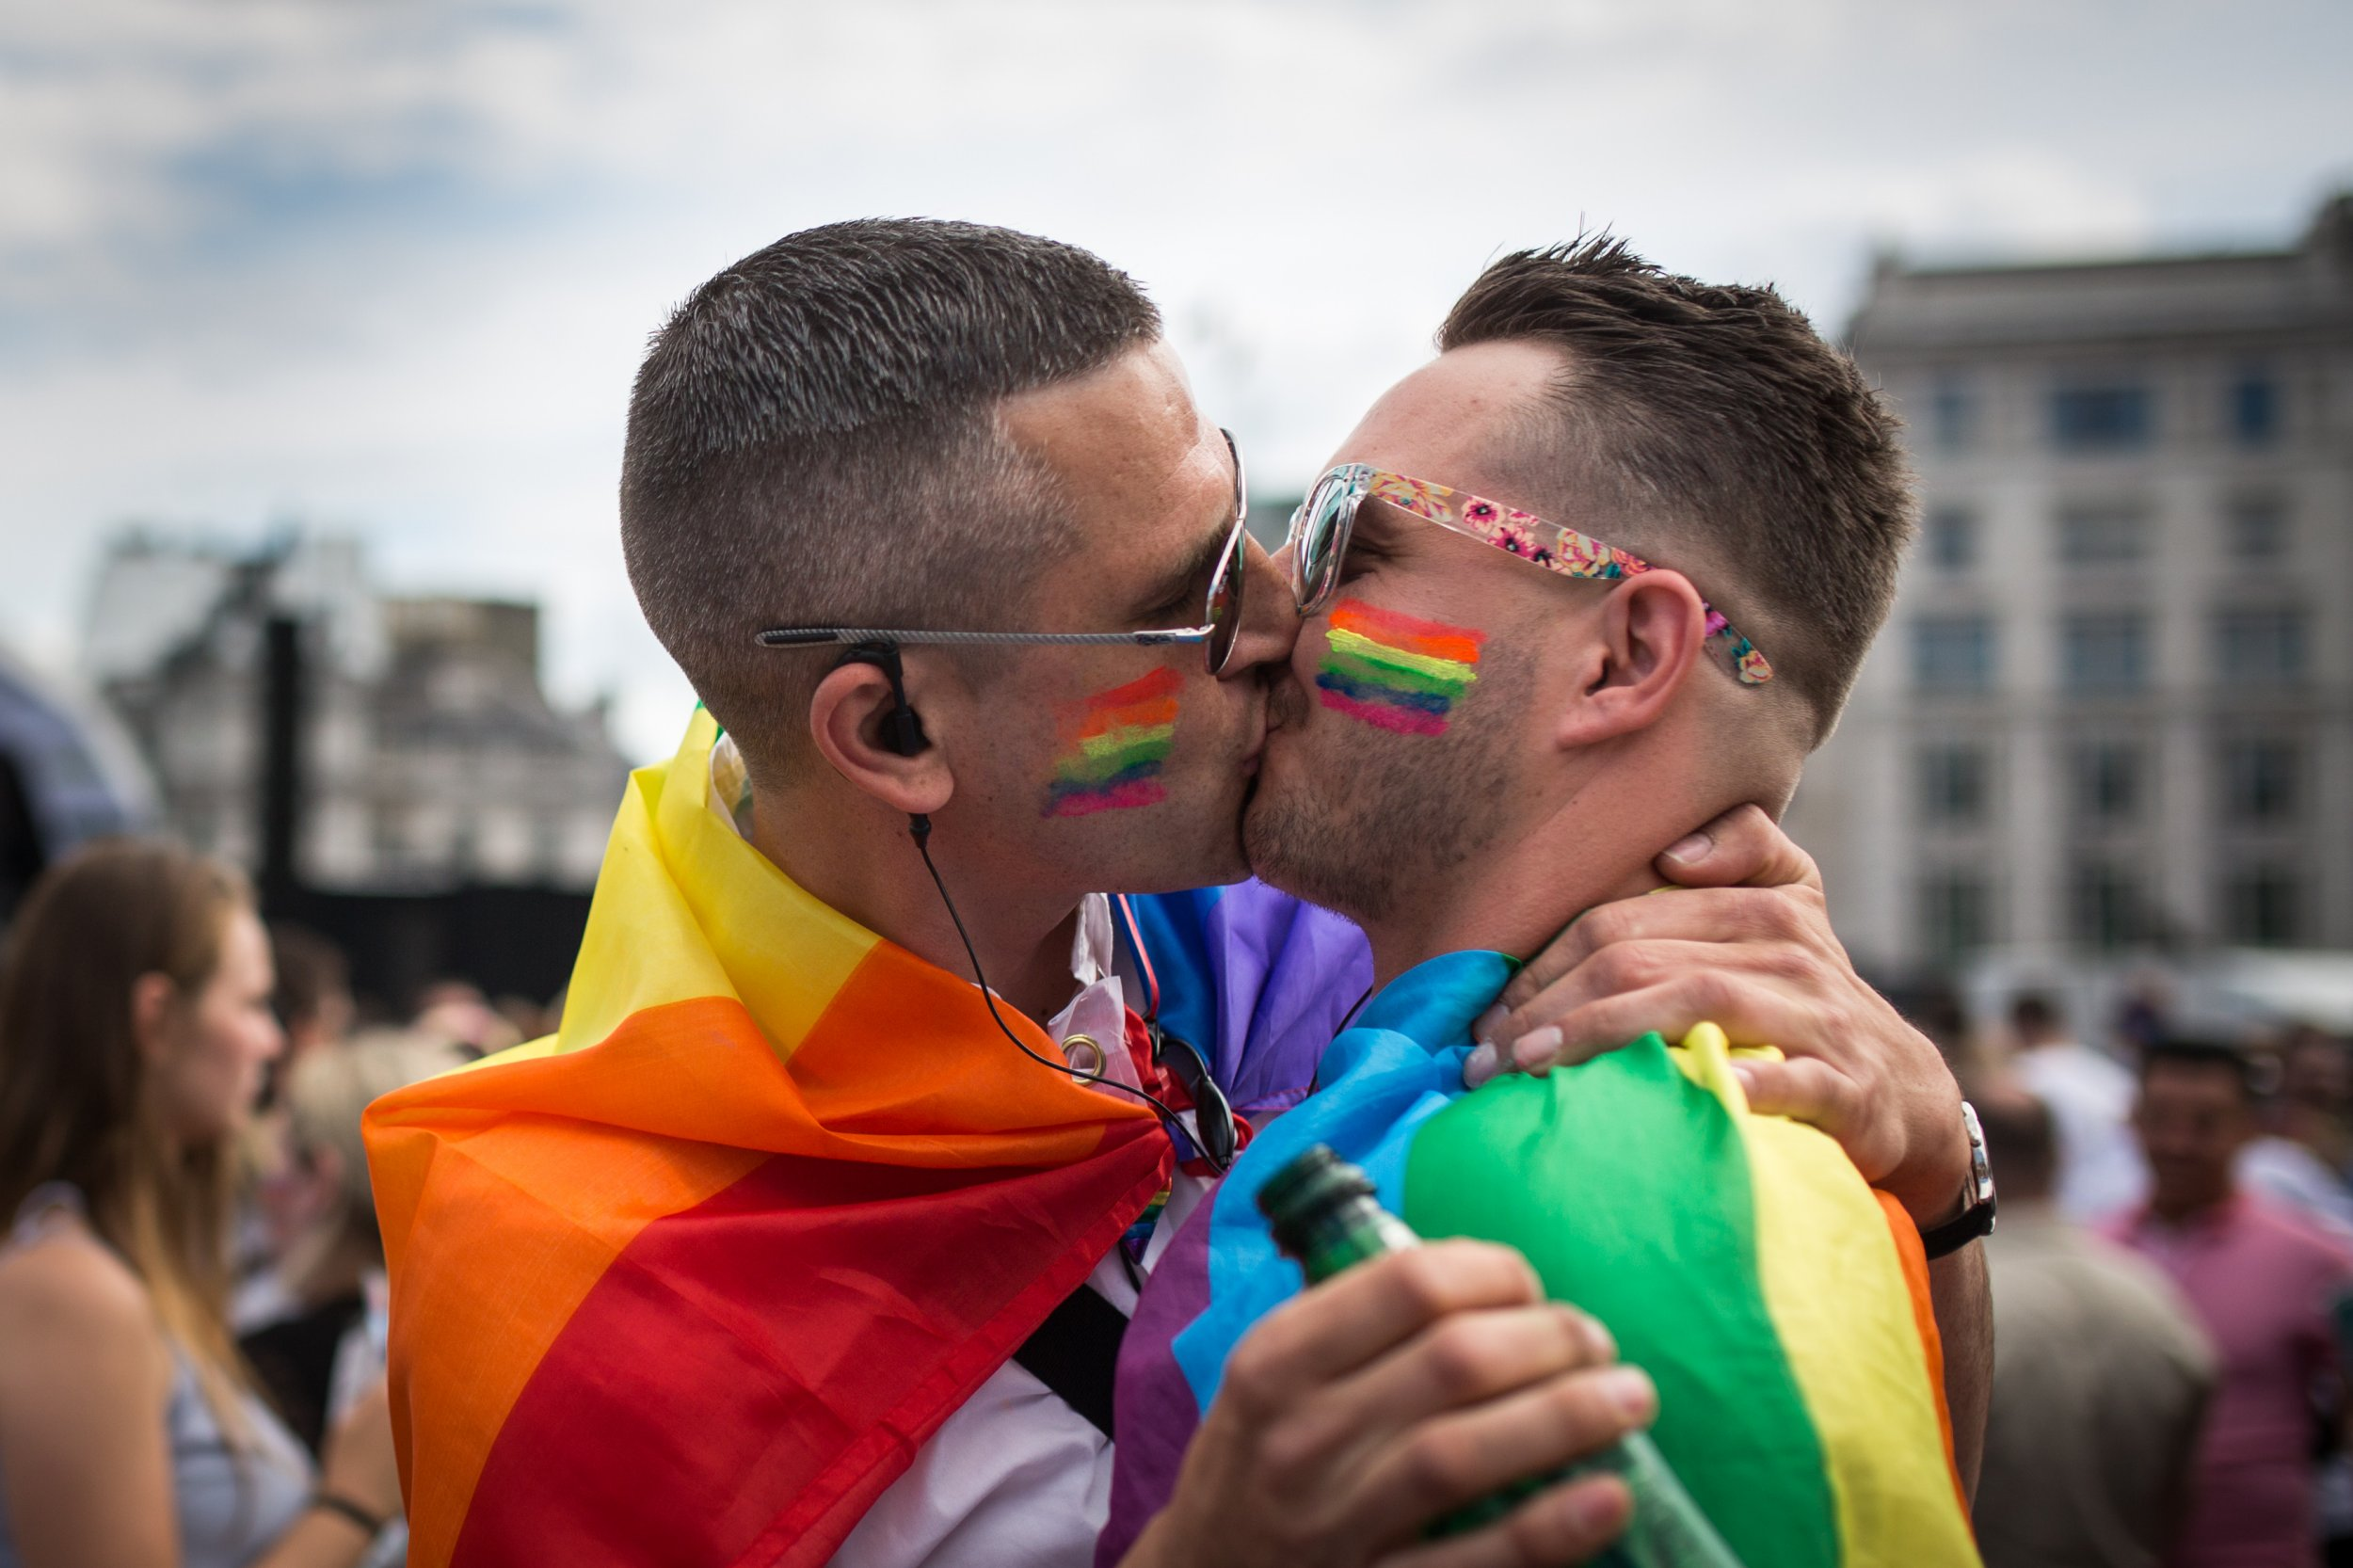 LONDON, ENGLAND - JUNE 27: A couple kiss in Trafalgar Square after the annual Pride in London Parade on June 27, 2015 in London, England. Pride in London is one of the world's biggest LGBT+ celebrations as thousands of people take part in a parade and attend performances at various locations across the city. (Photo by Rob Stothard/Getty Images)